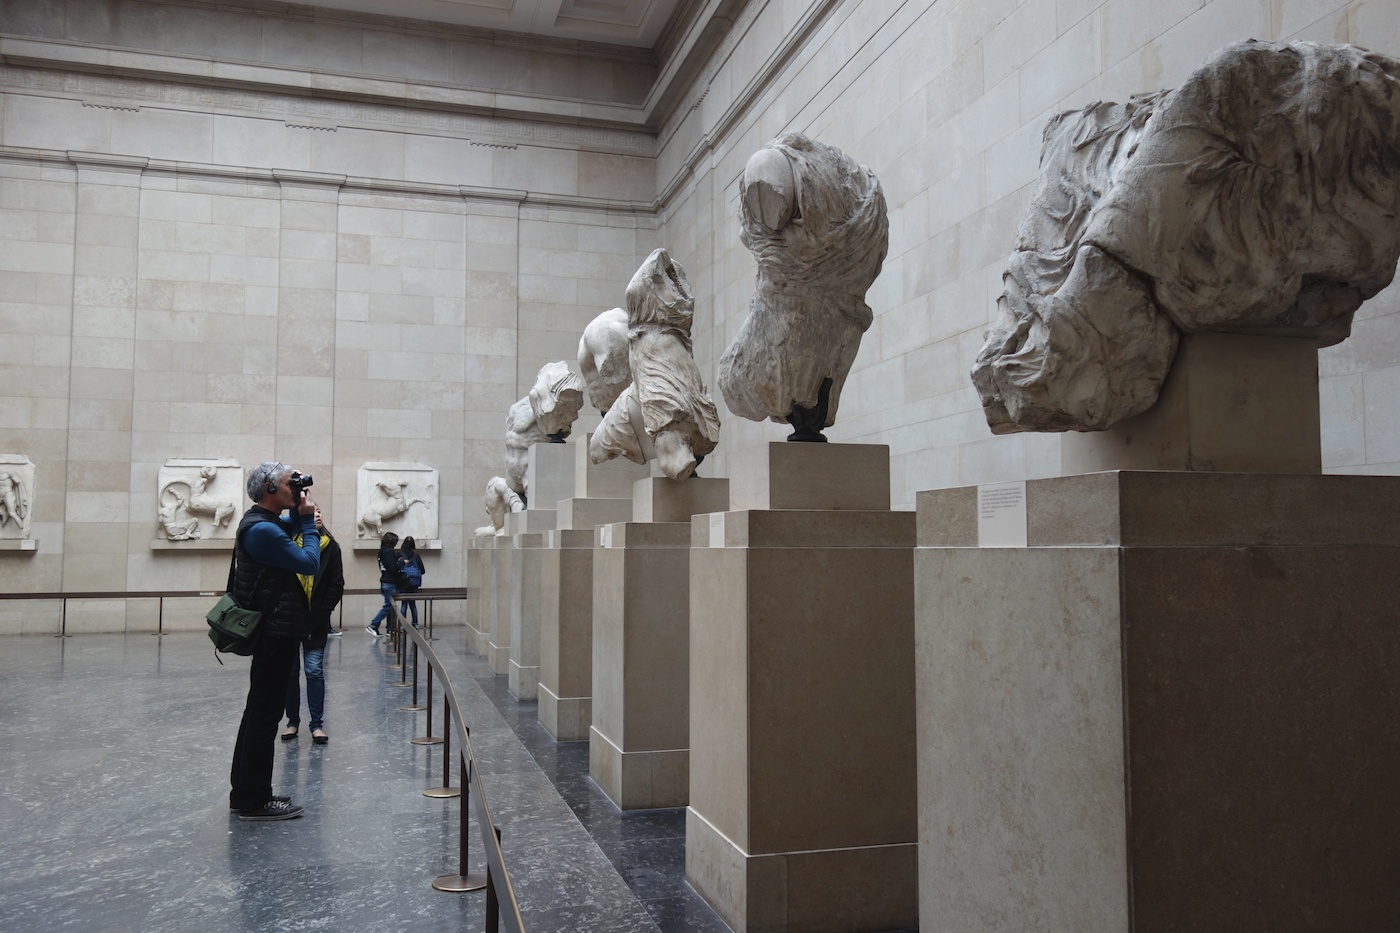 elgin marbles essay The present and forward fate of the elgin marbles essay sample the parthenon marbles are works of art taken from the acropolis of athens by lord elgin and brought to england while greece was under the control of the ottoman empire.